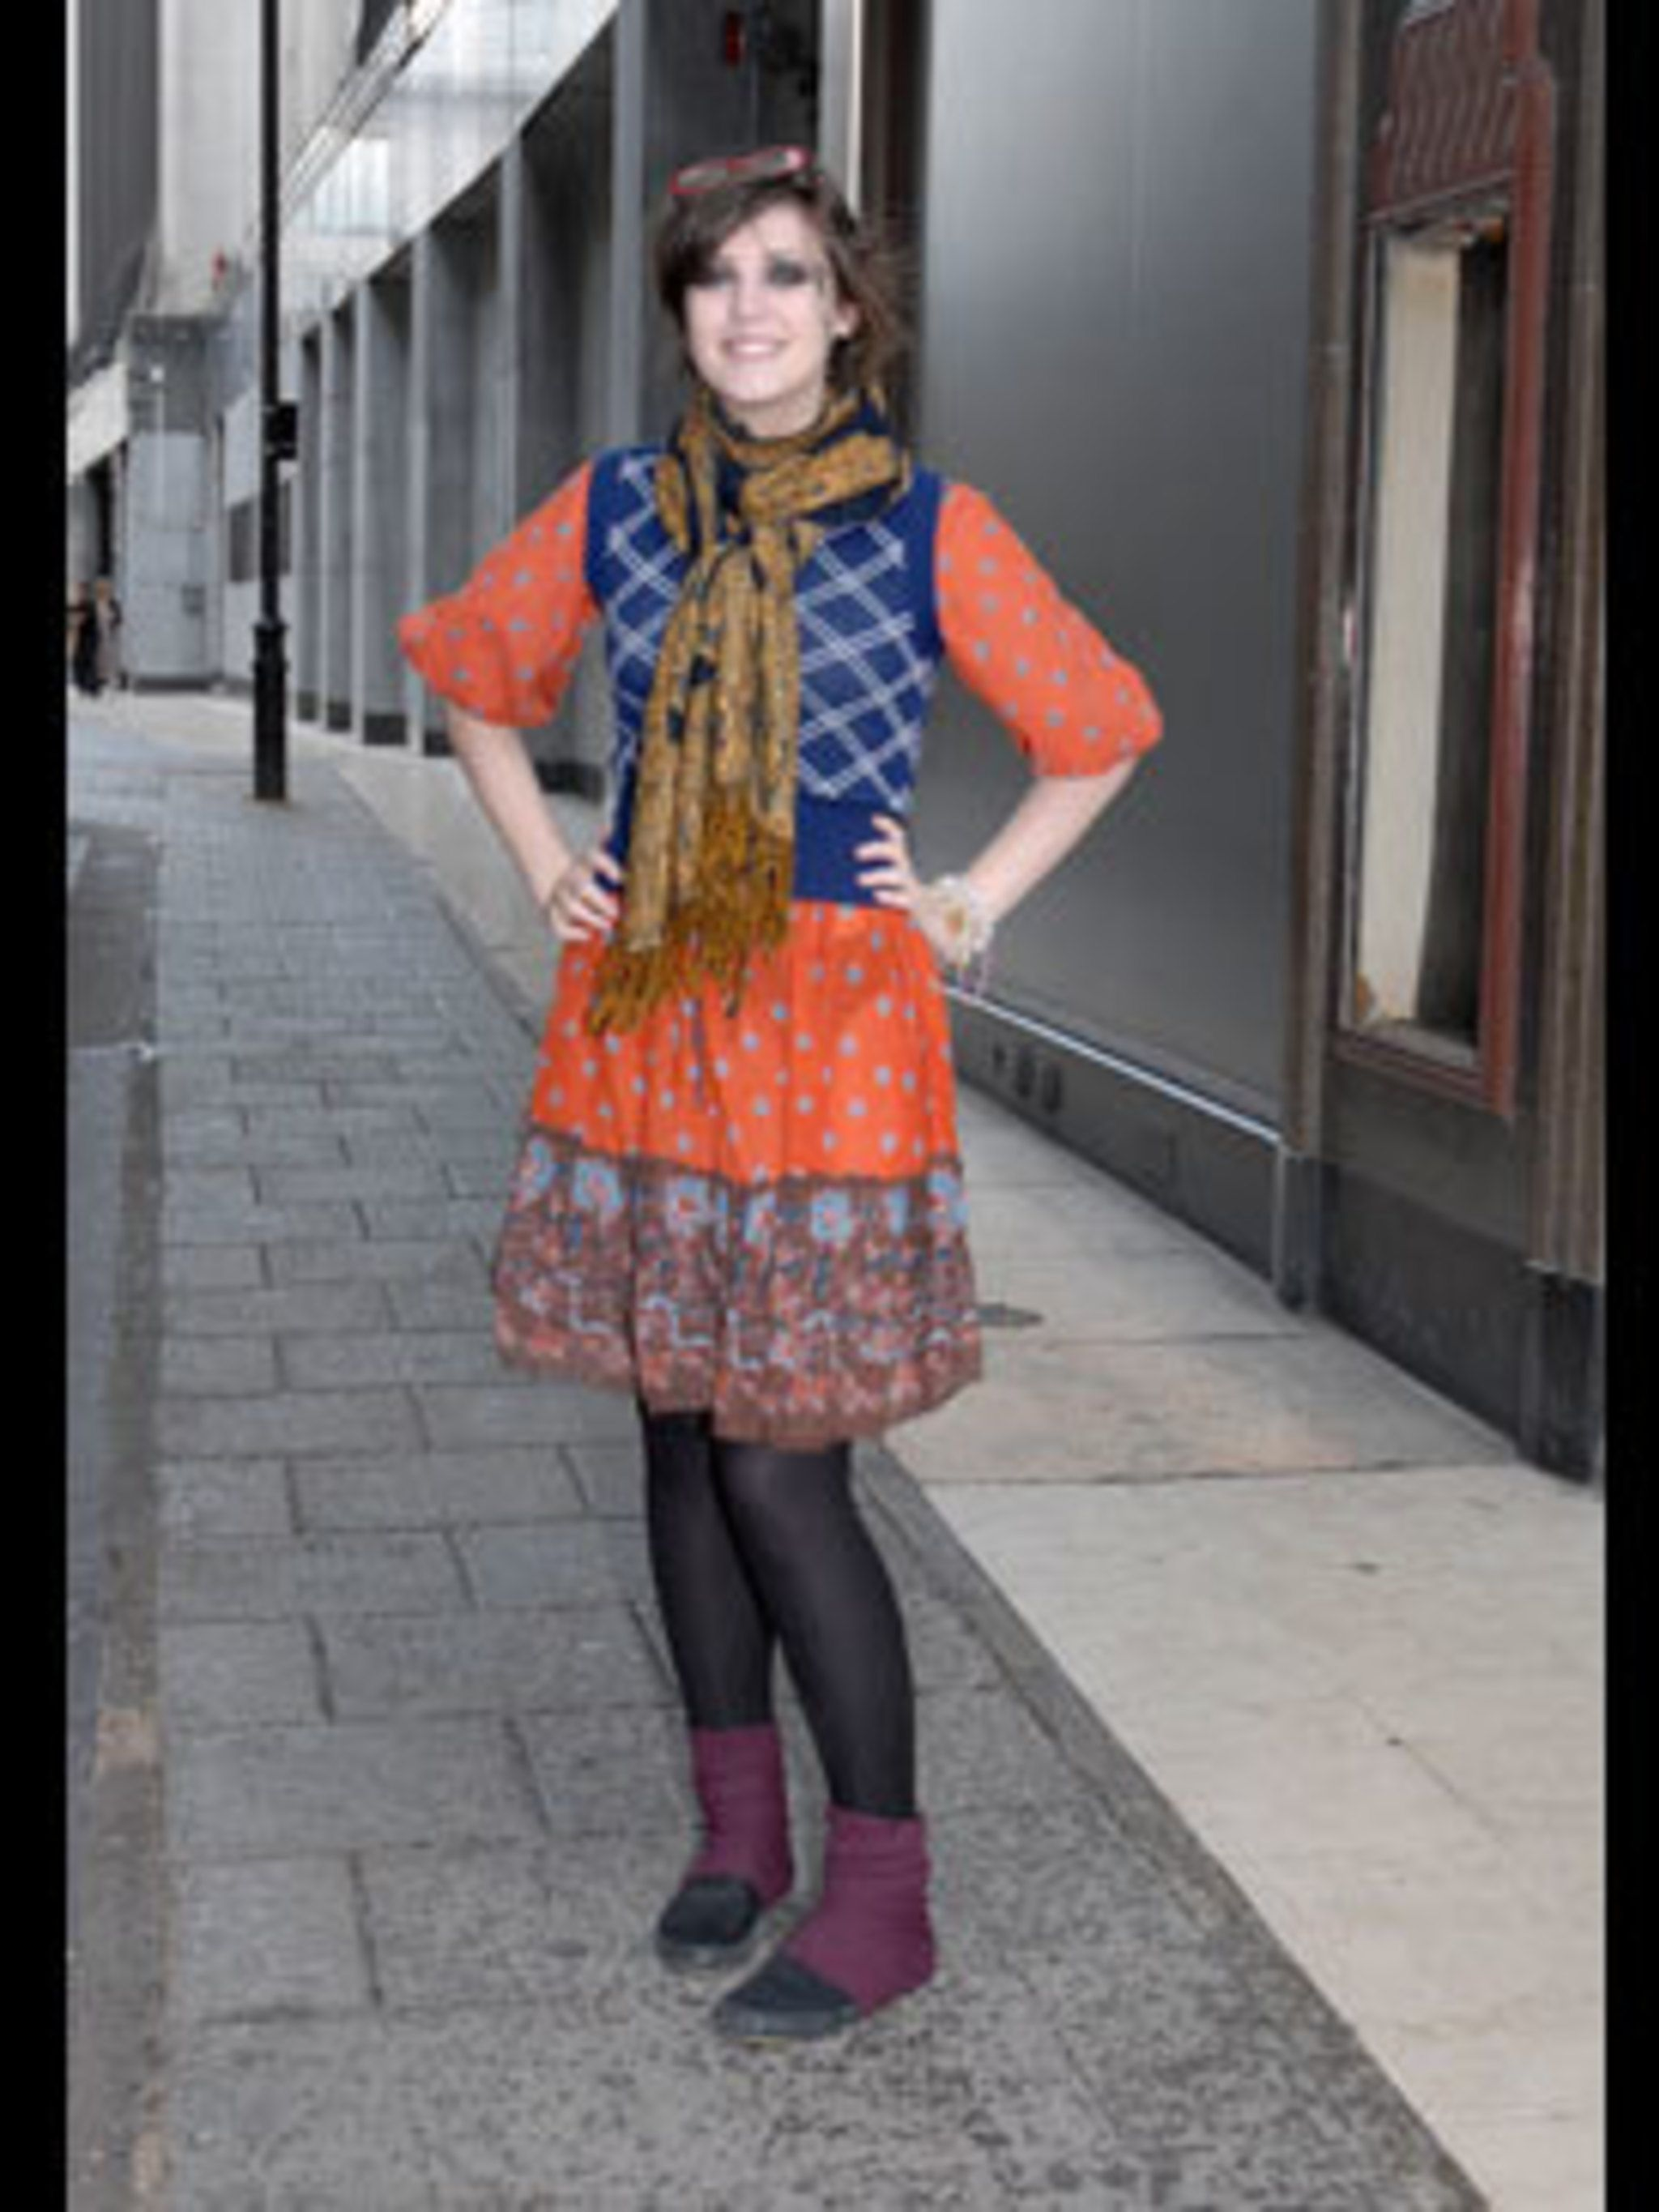 <p>Emily has gone all out, combining textures and clashing prints and carrying it off with uber confidence. She makes her own clothes and sells them online, so she knows what looks fabulous. Her plum leg warmers sit well with the purple detailing on the h